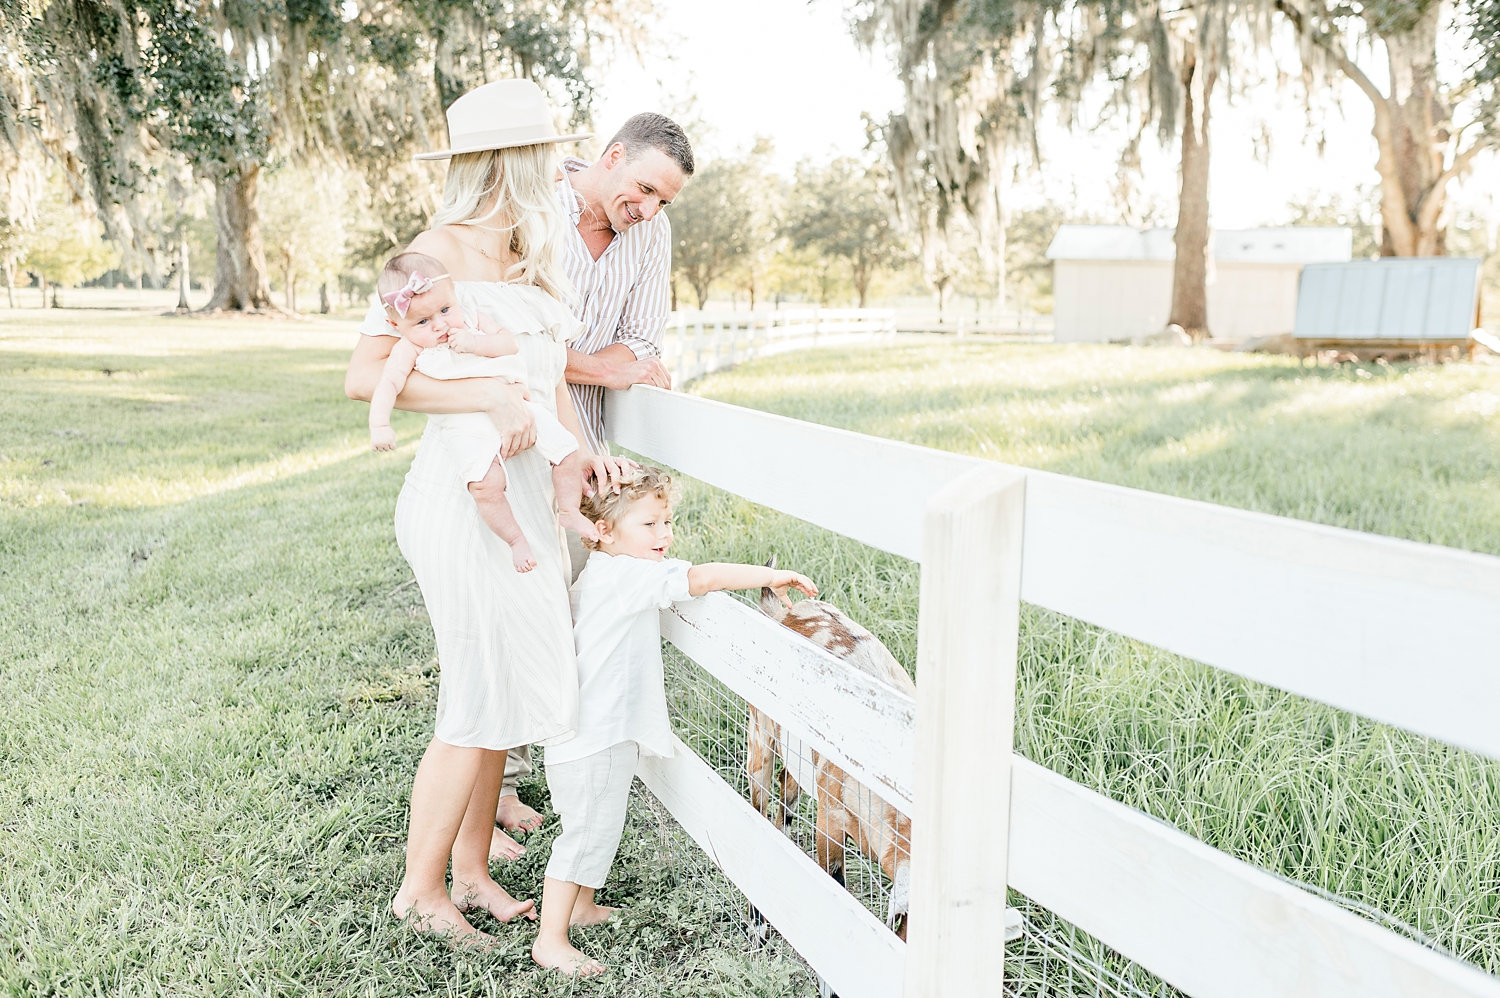 Ryan Lochte wife, Ryan Lochte family, rustic family photo session, farm, Congaree and Penn, Rya Duncklee